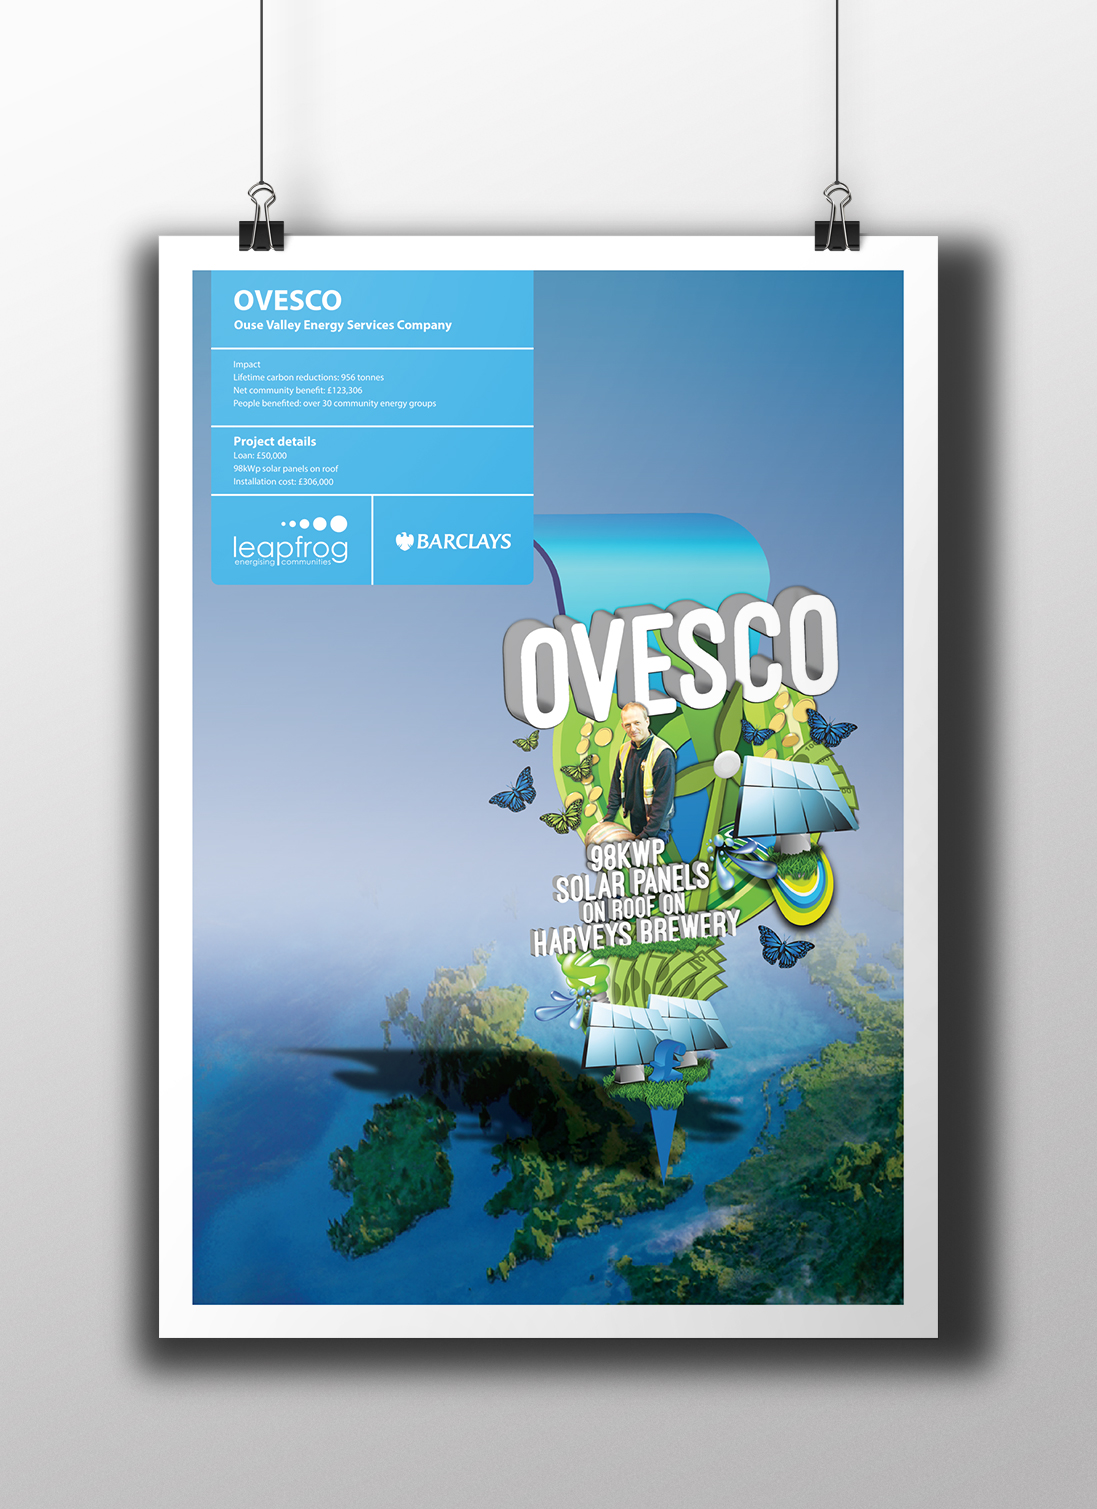 Pureleapfrog + Barclays Ovesco-community energy fund